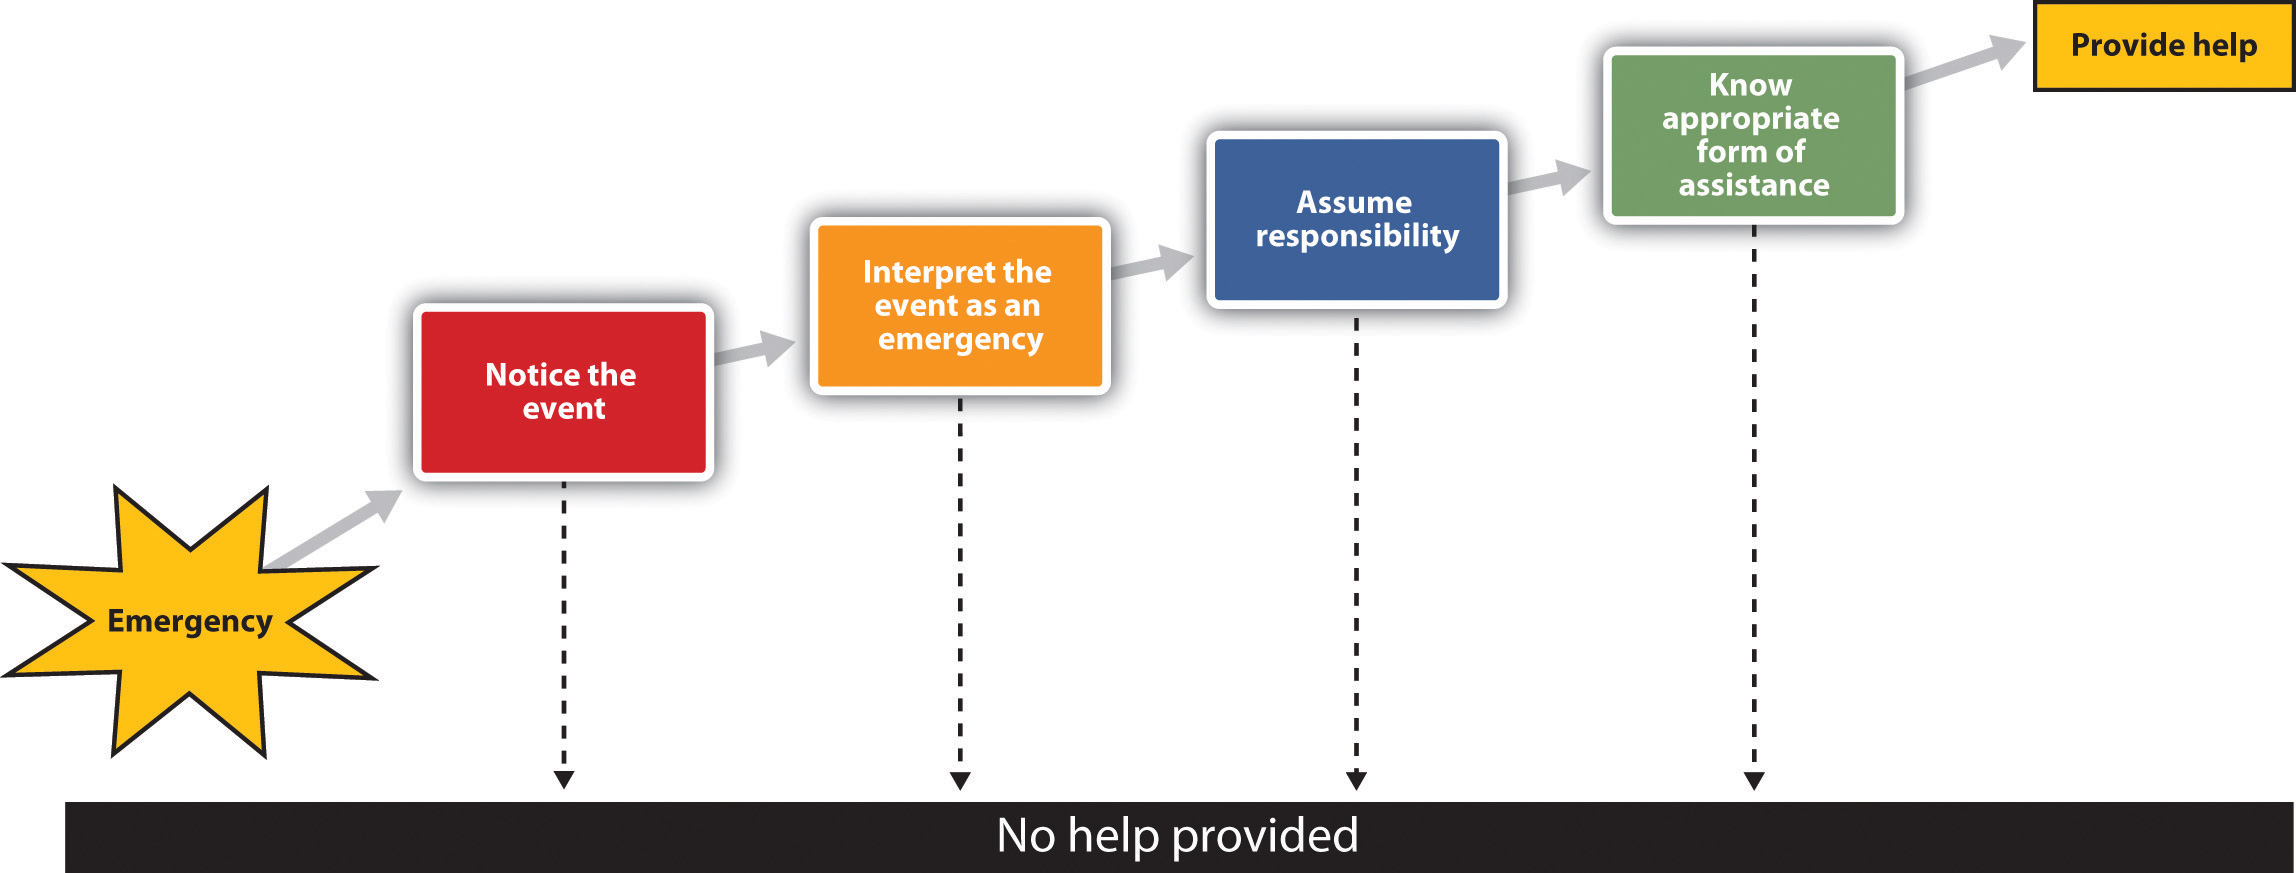 darley and latanes decision tree model of helping